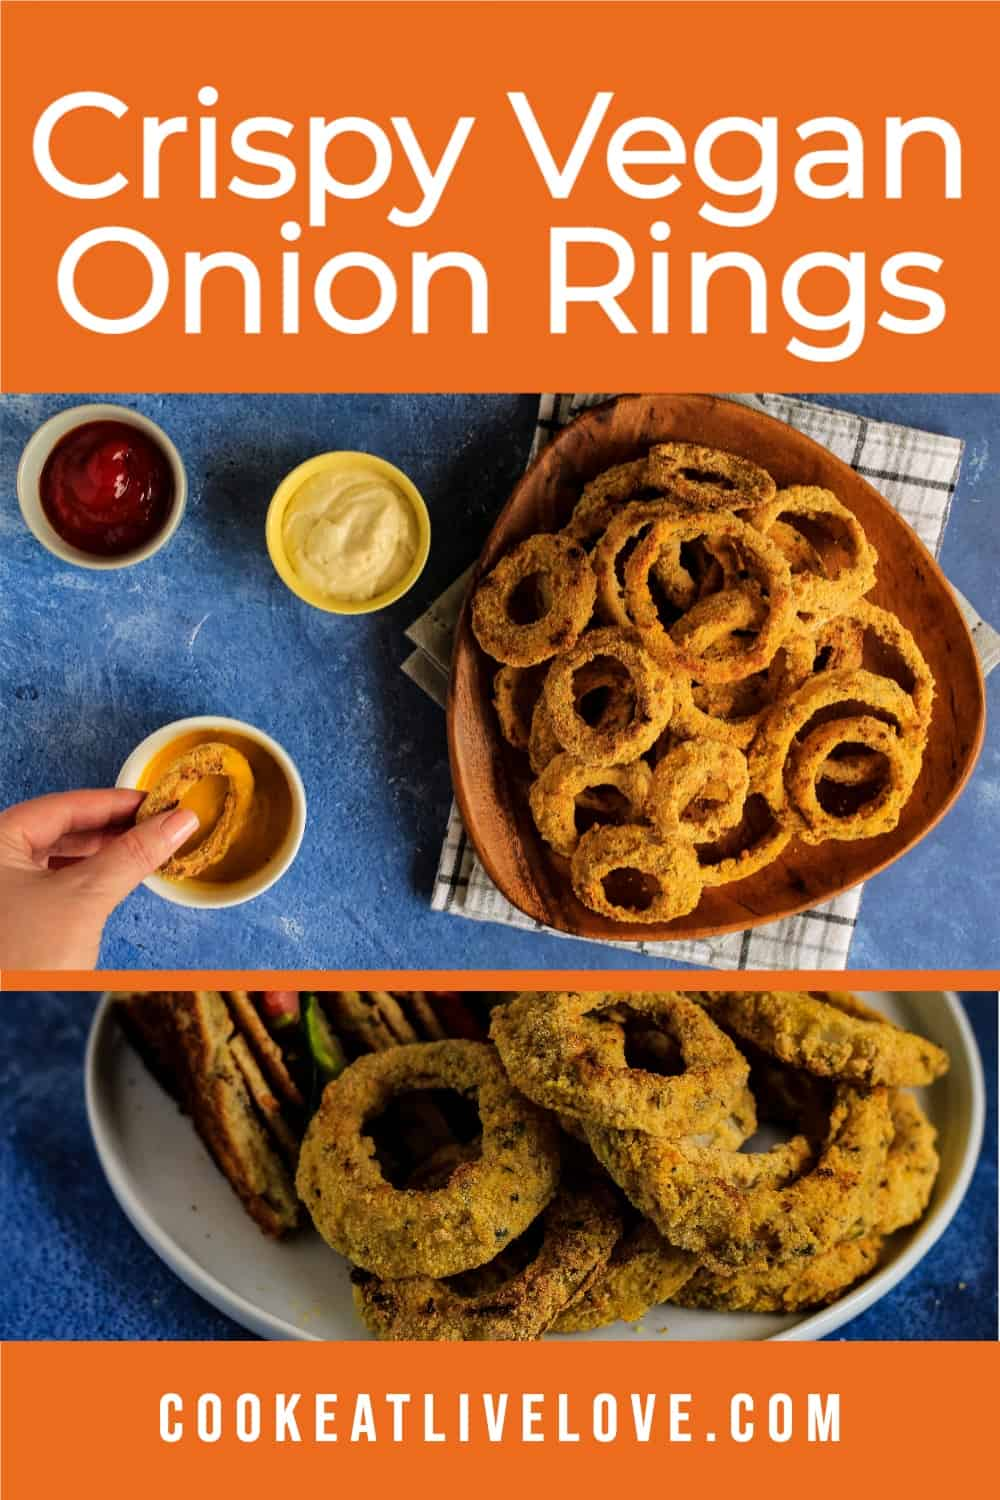 Pin for pinterest with different images of vegan baked onion rings.